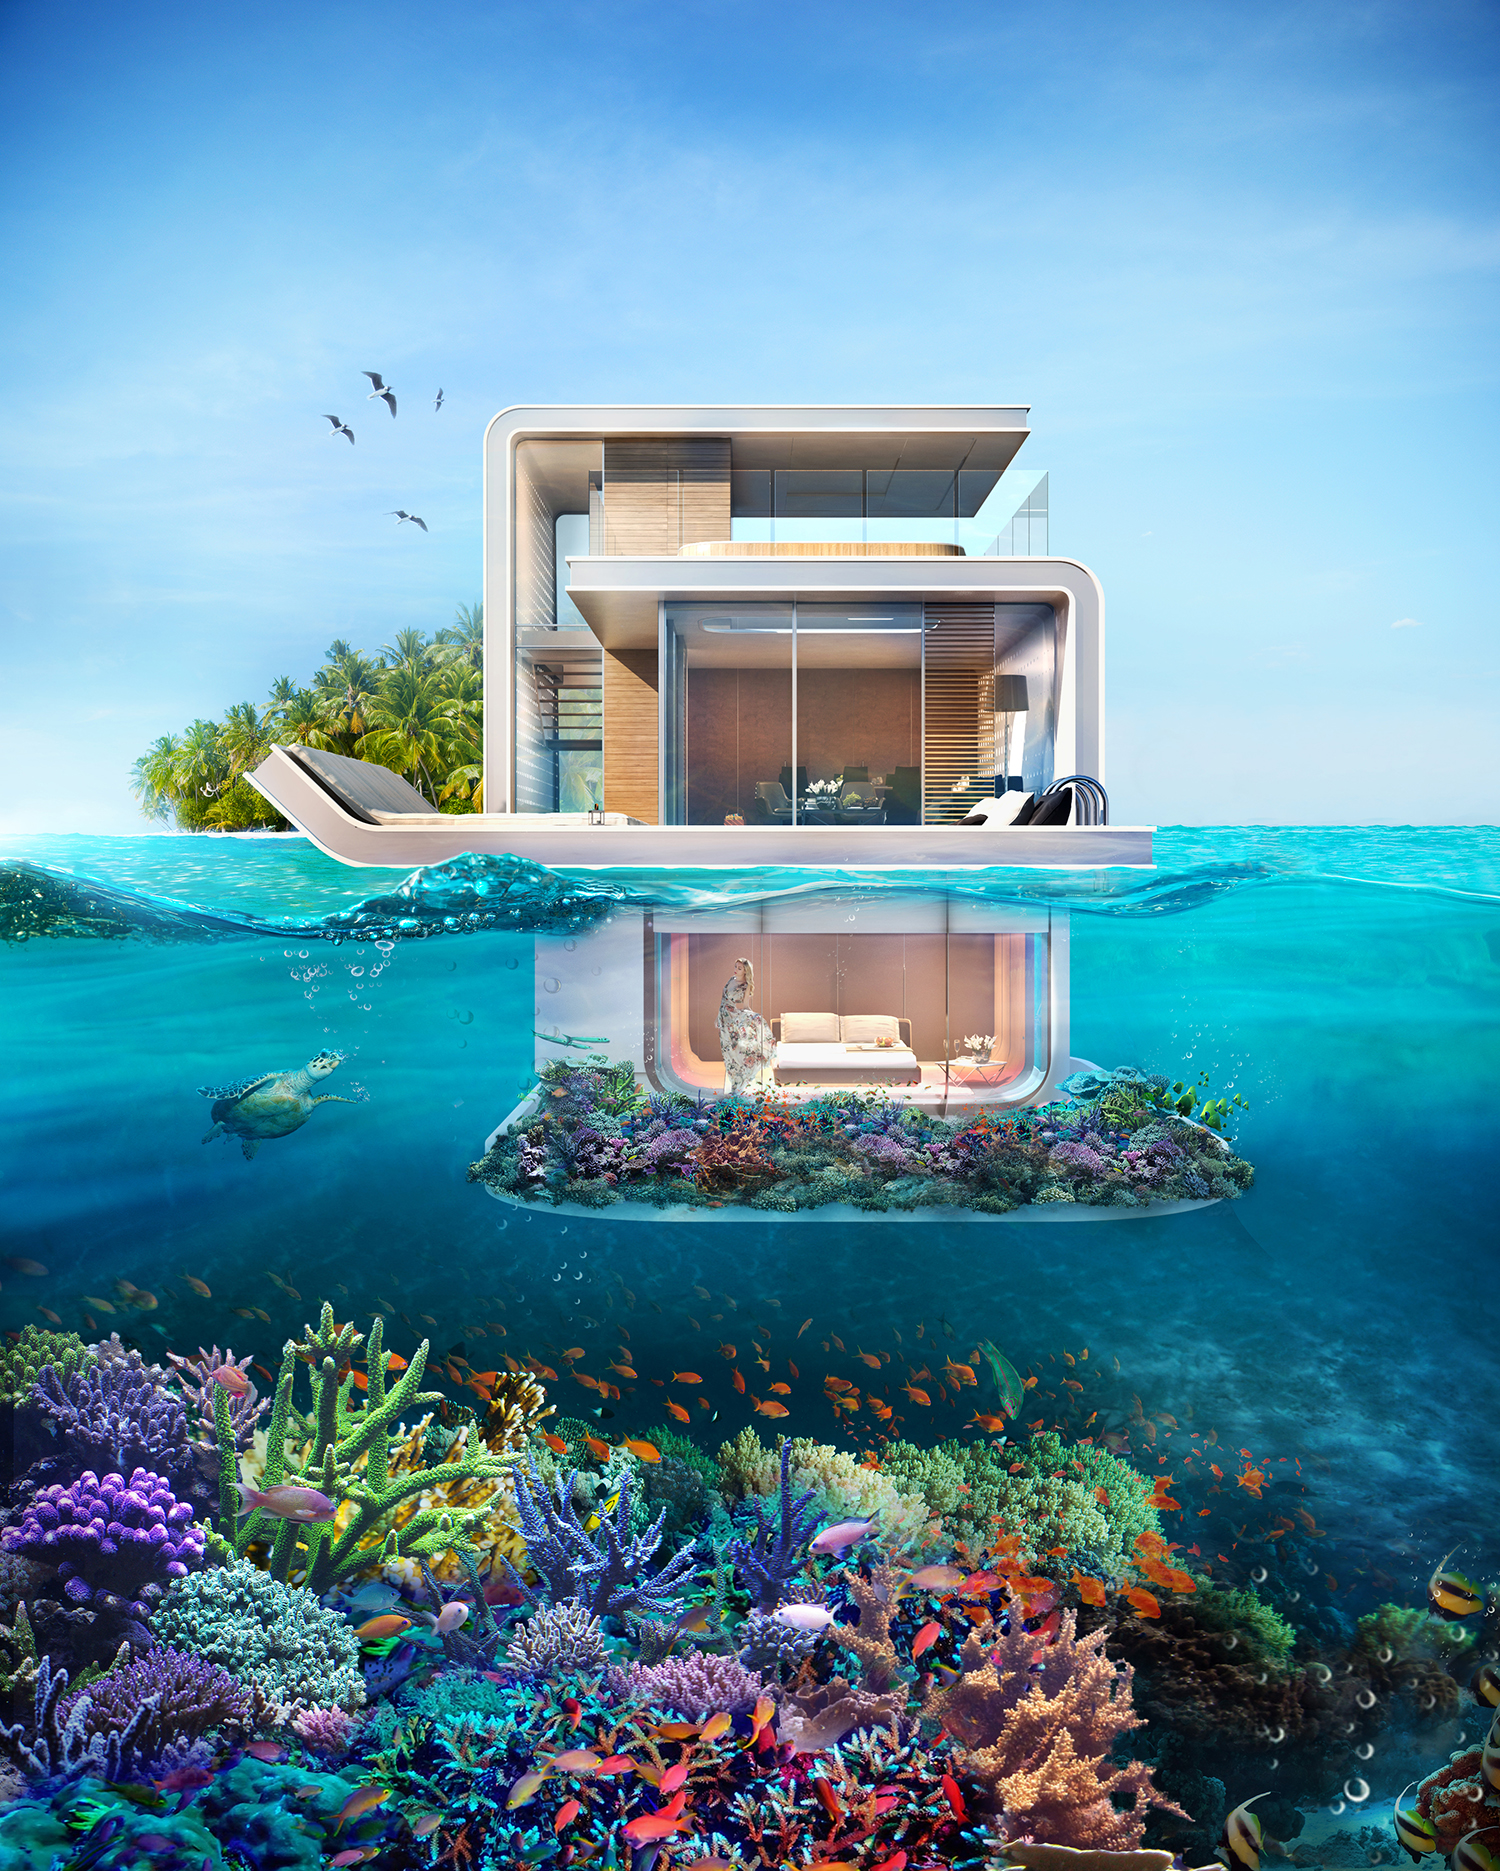 Dubais Floating Seahorse Homes Are Partially Submerged And Totally Futuristic